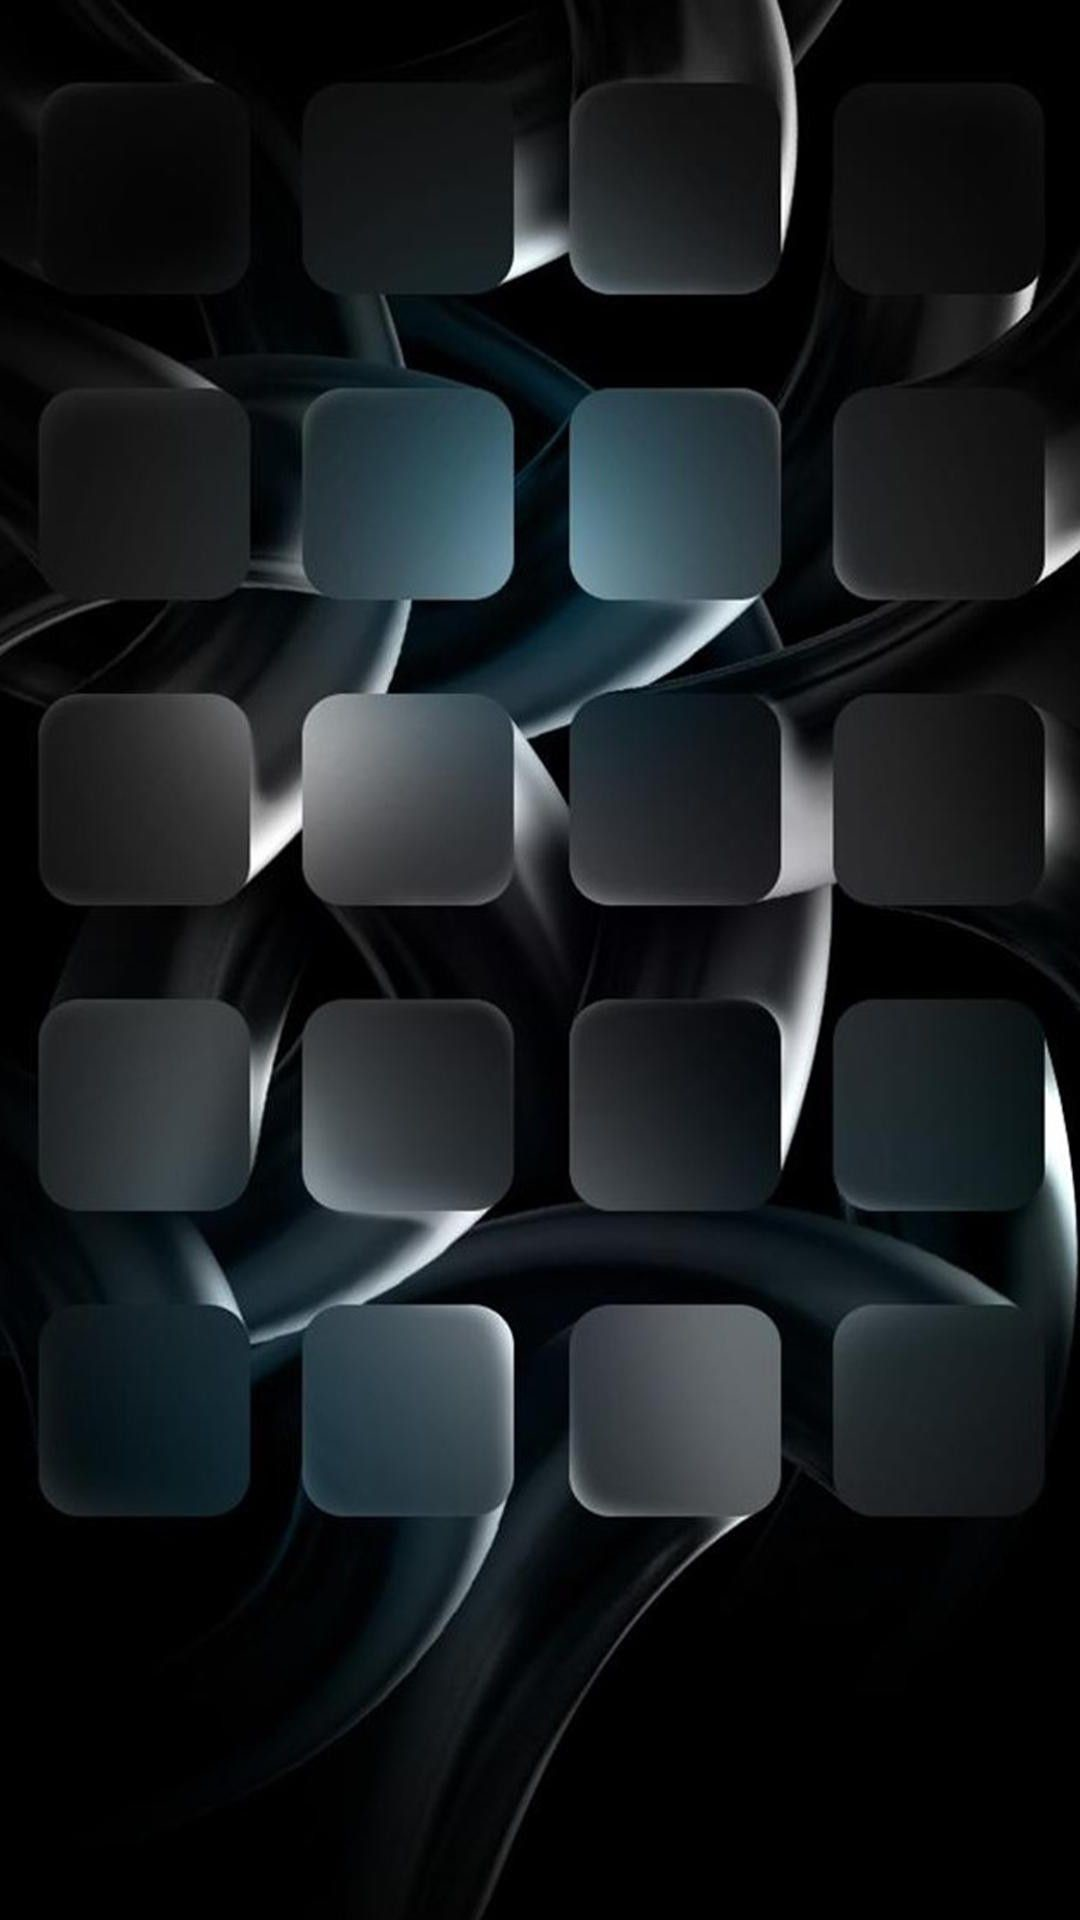 Abstract Phone Wallpapers